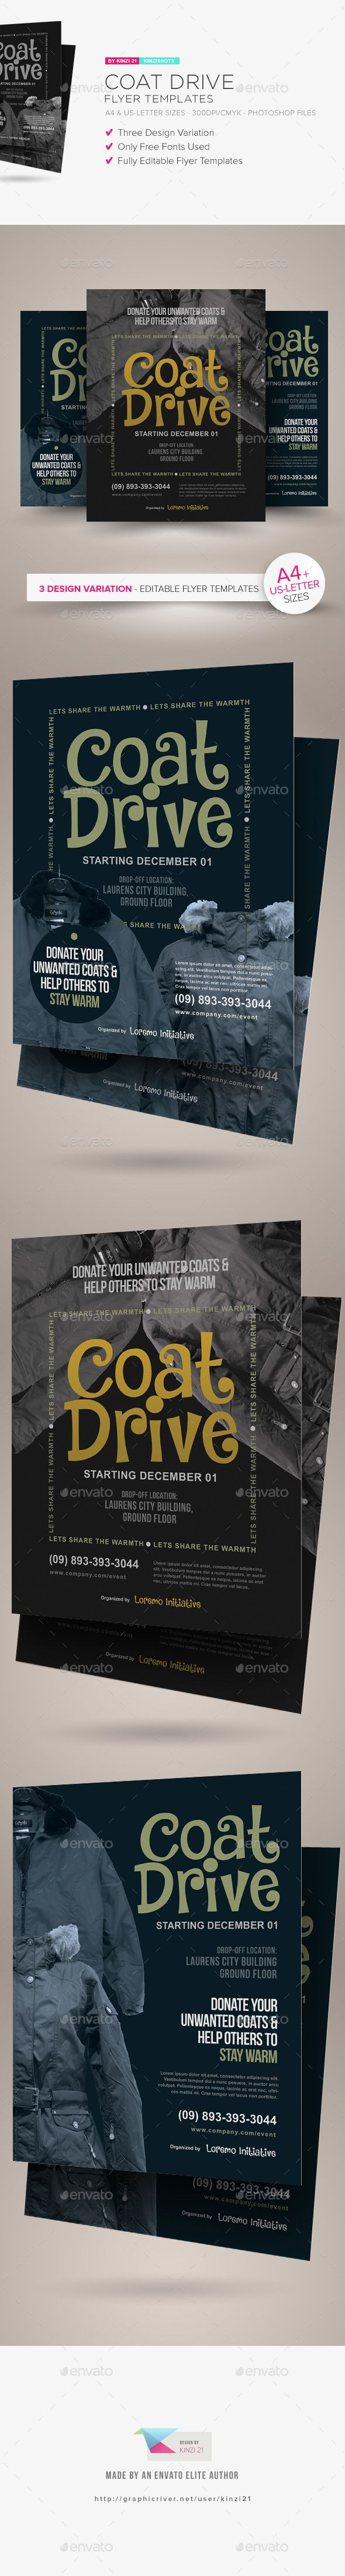 Coat Drive Flyer Templates | Pinterest | Flyer template and Template